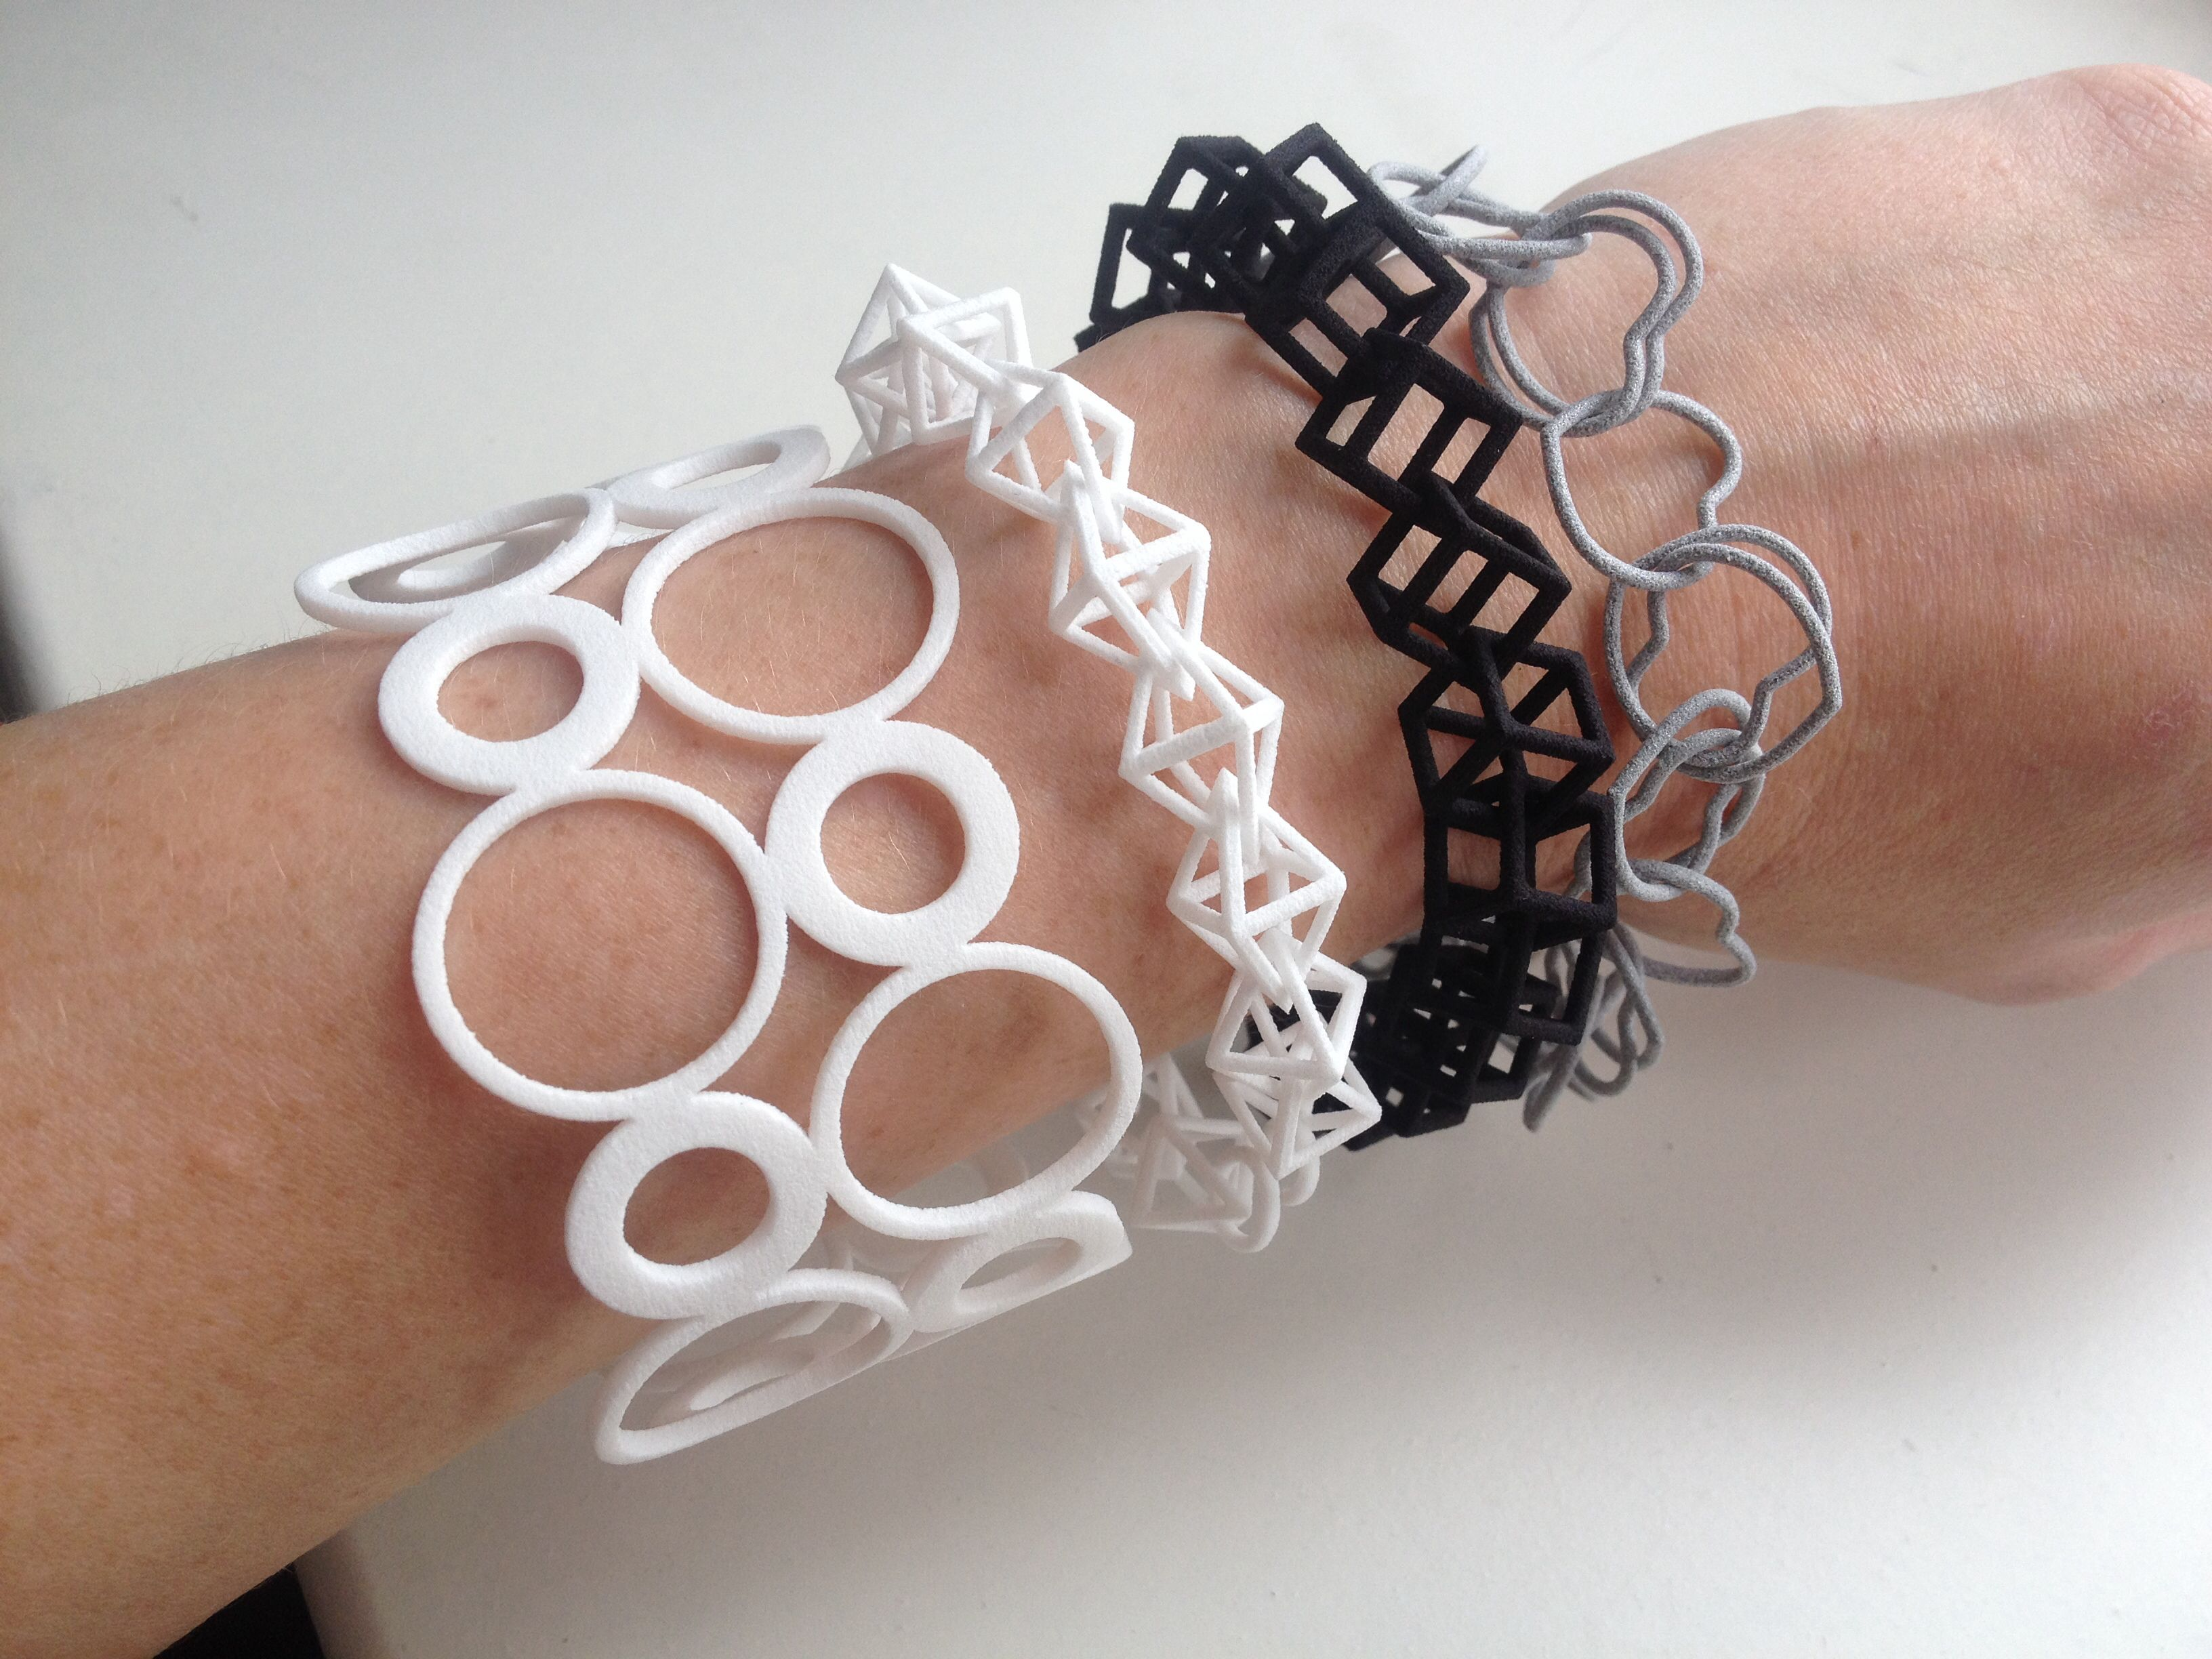 3D printed jewelry at Nieuwerwets